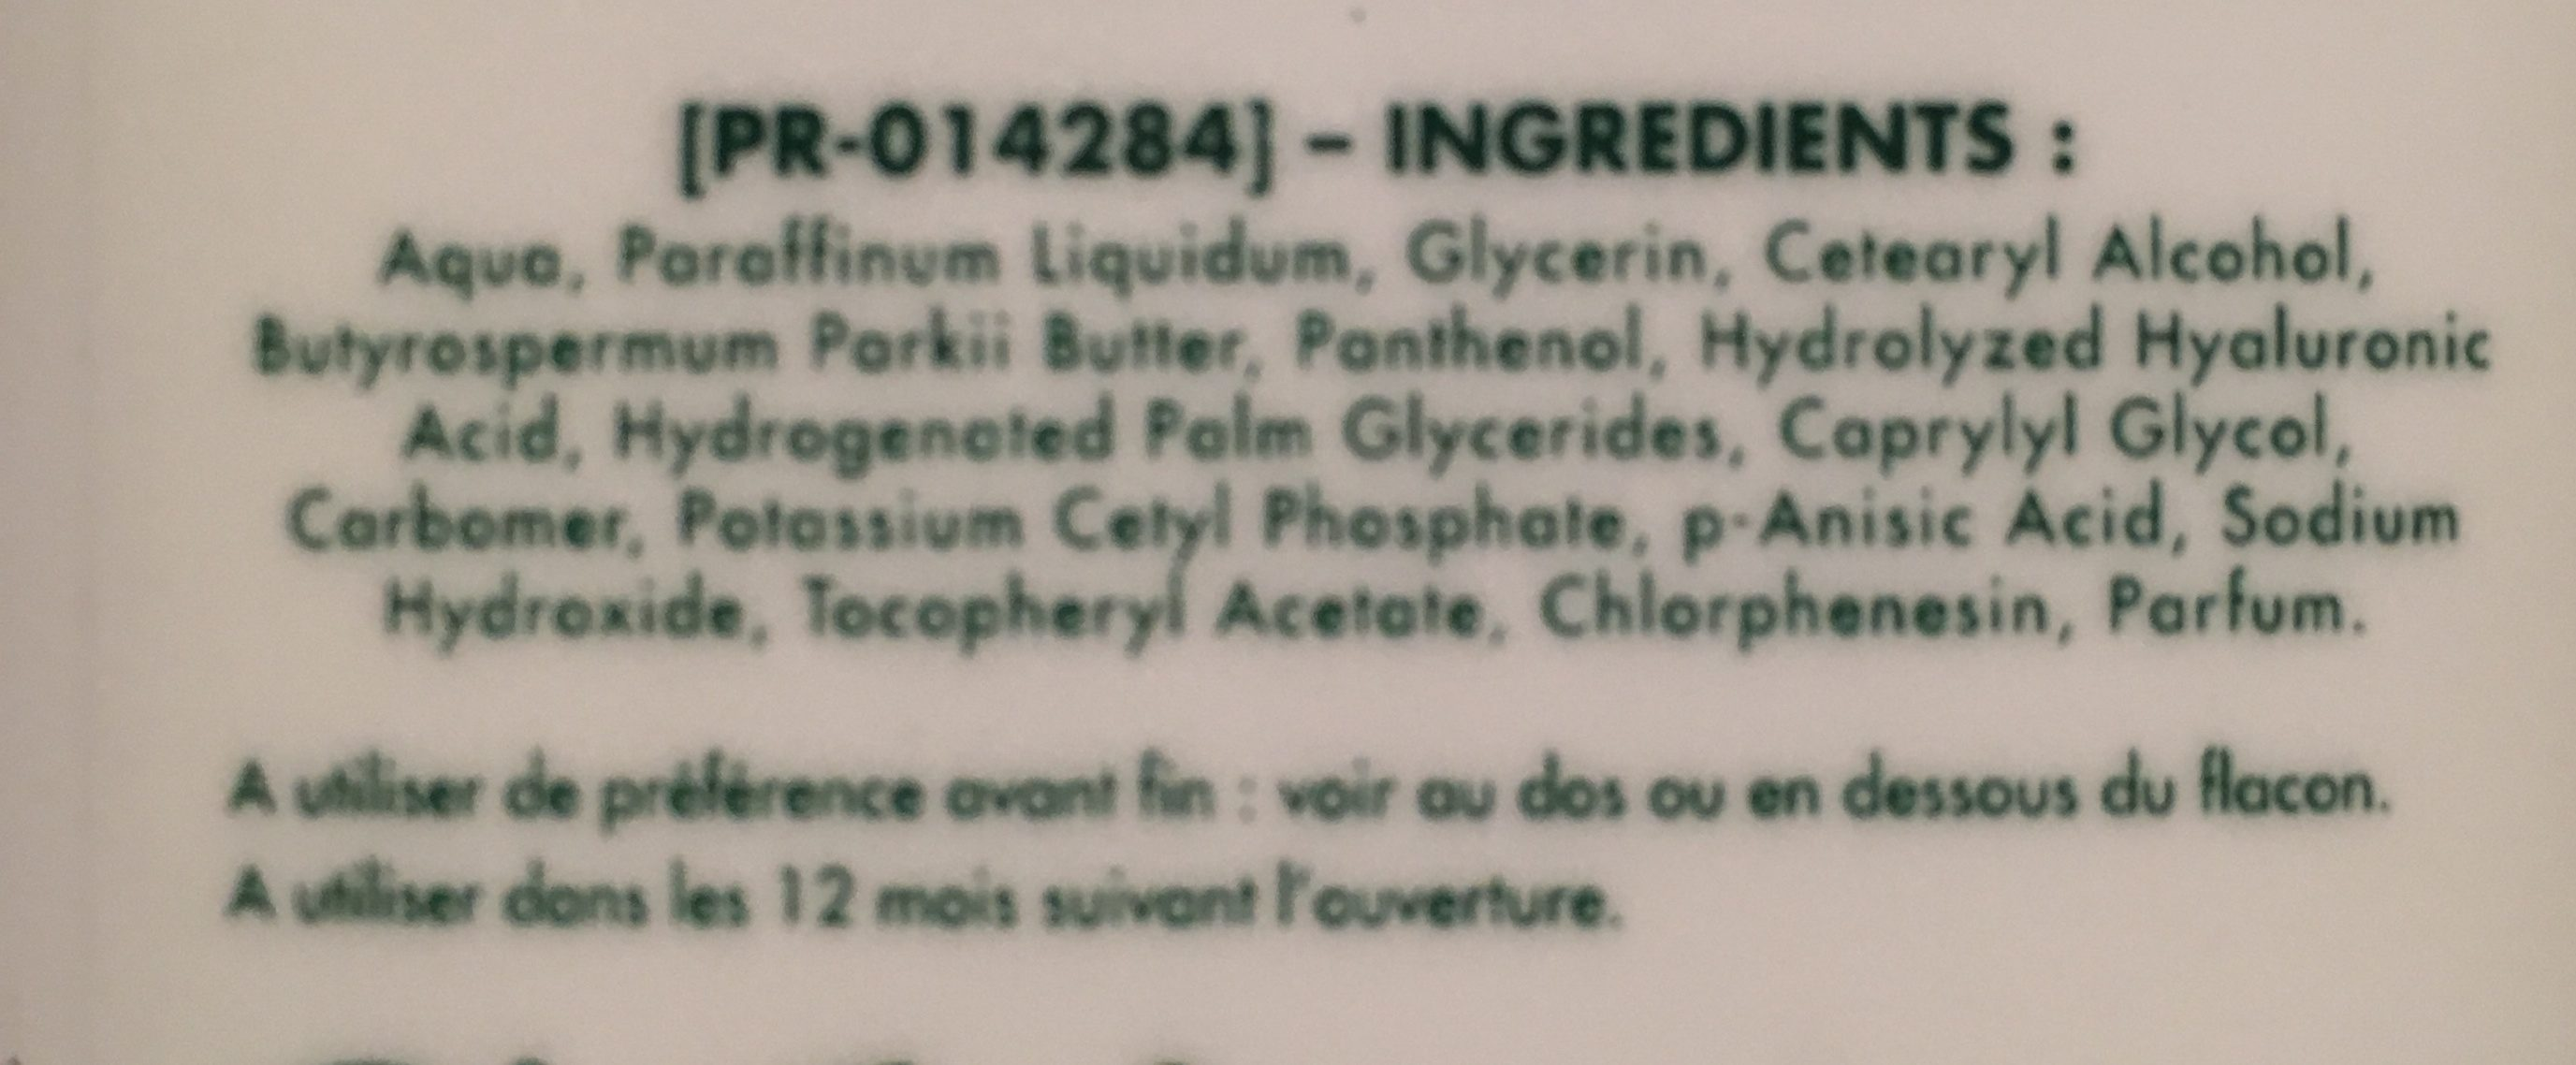 Lait Hydratant Corporel Quotidien - Ingredients - fr